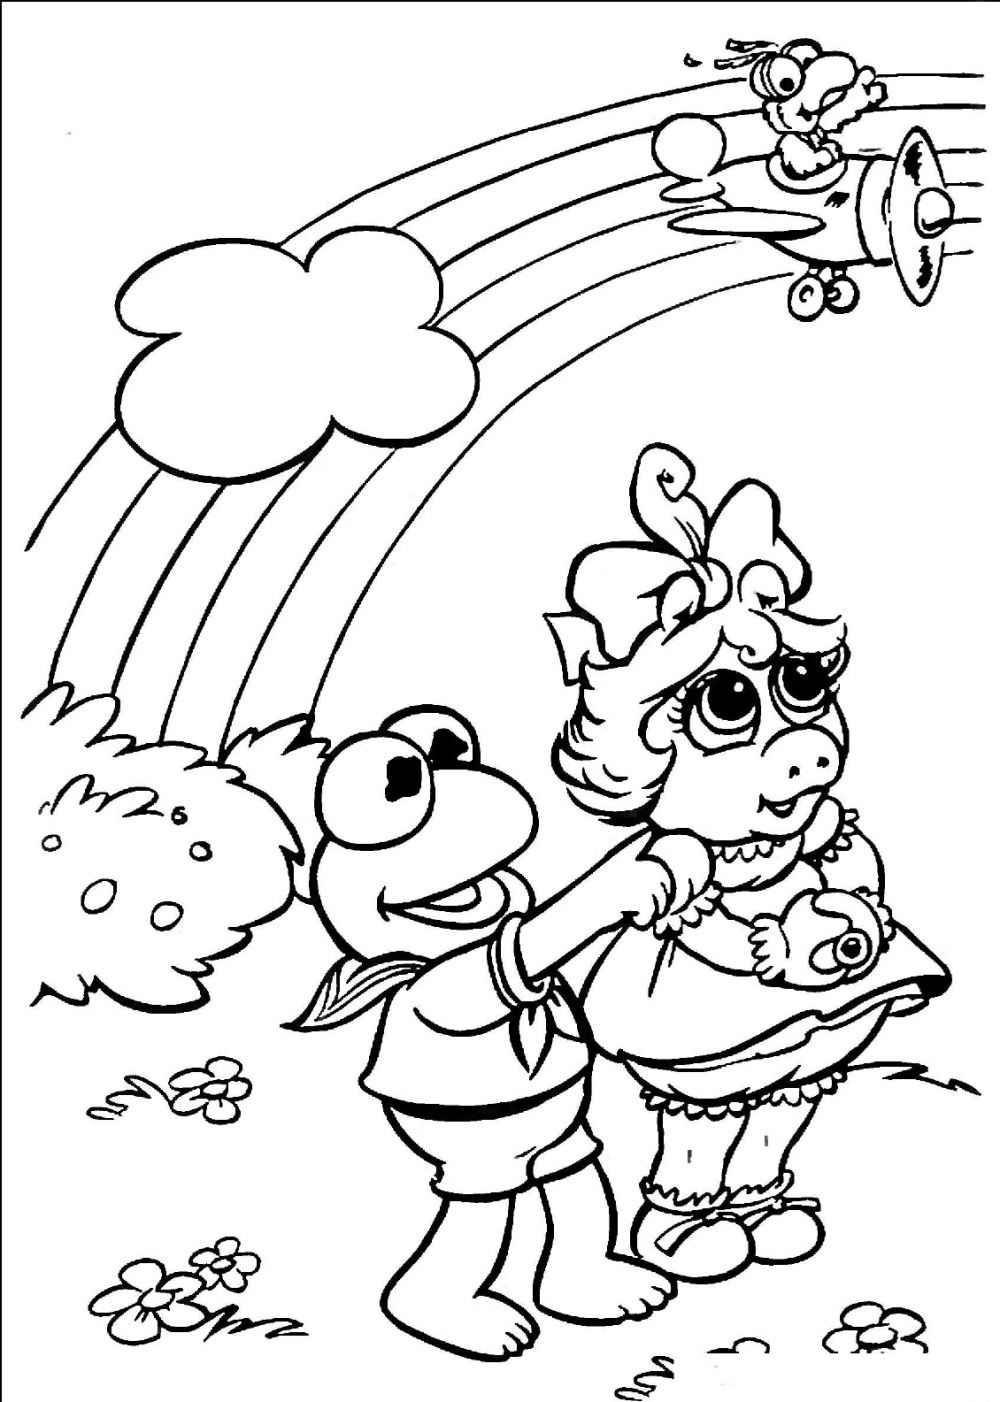 coloring images 38 best printable coloring pages we need fun images coloring